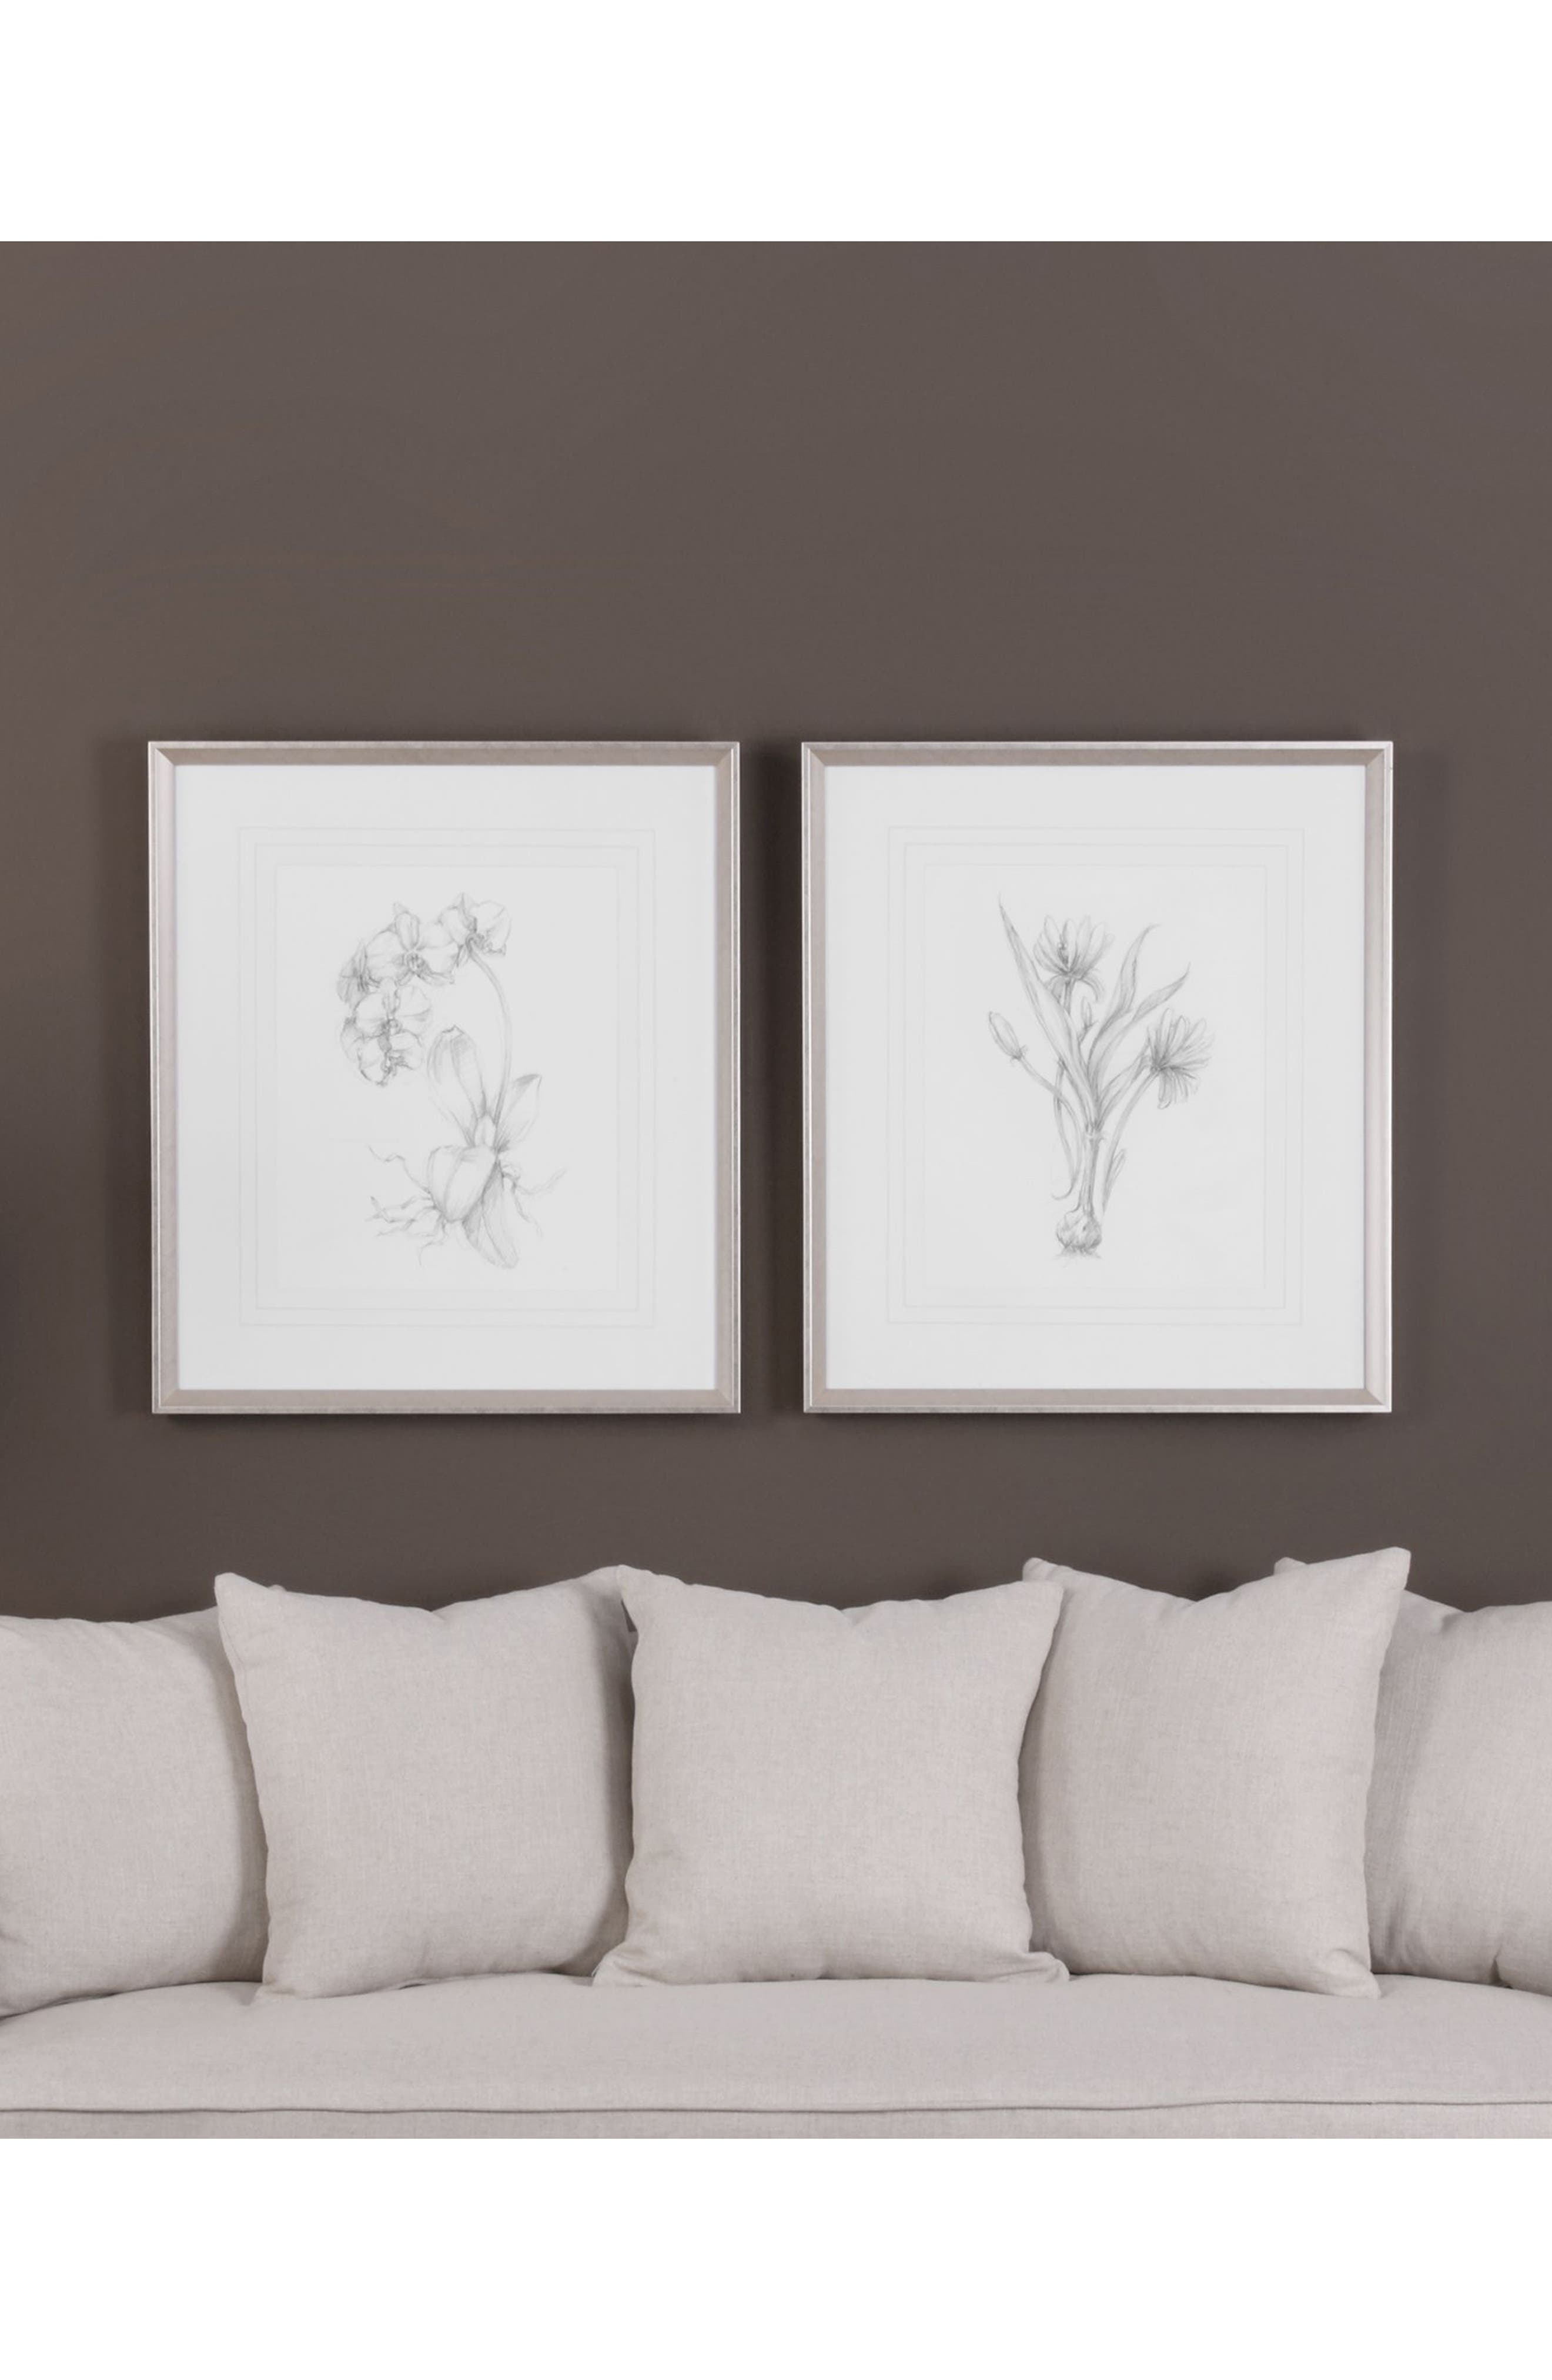 Botanical Sketch Set of 2 Art Prints,                             Alternate thumbnail 2, color,                             White